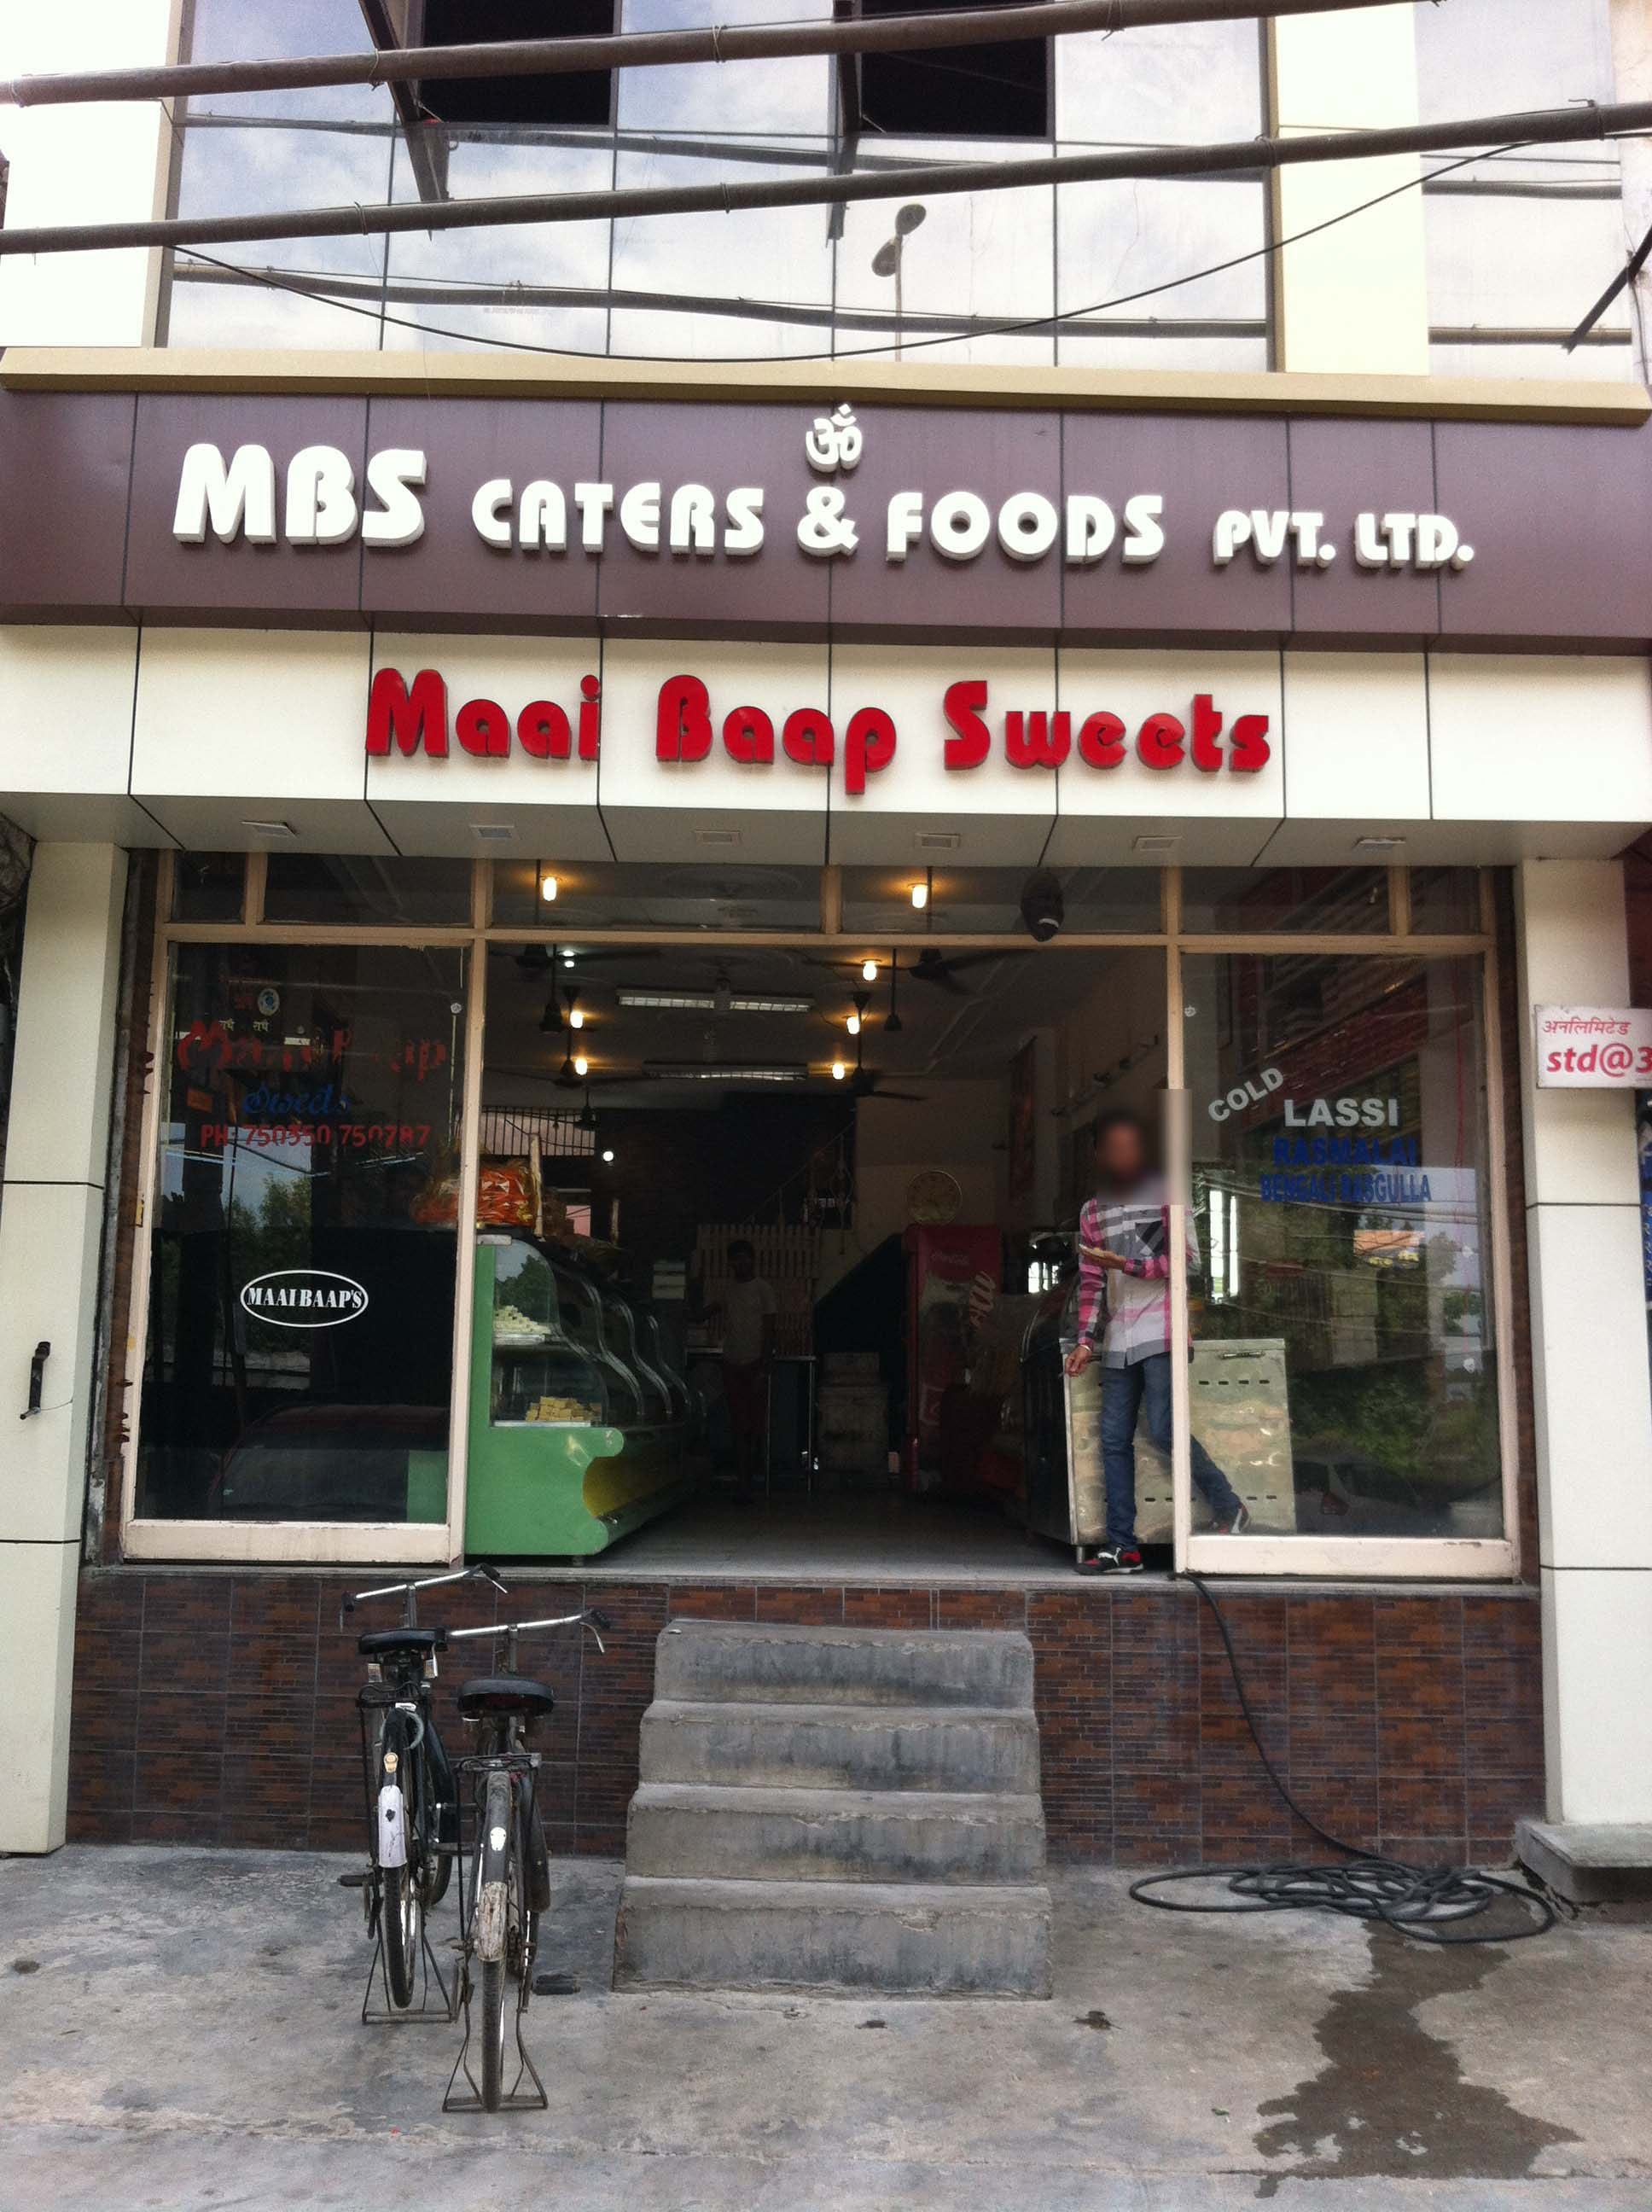 Maai Baap Sweets - ludhiana Junction - Ludhiana Image